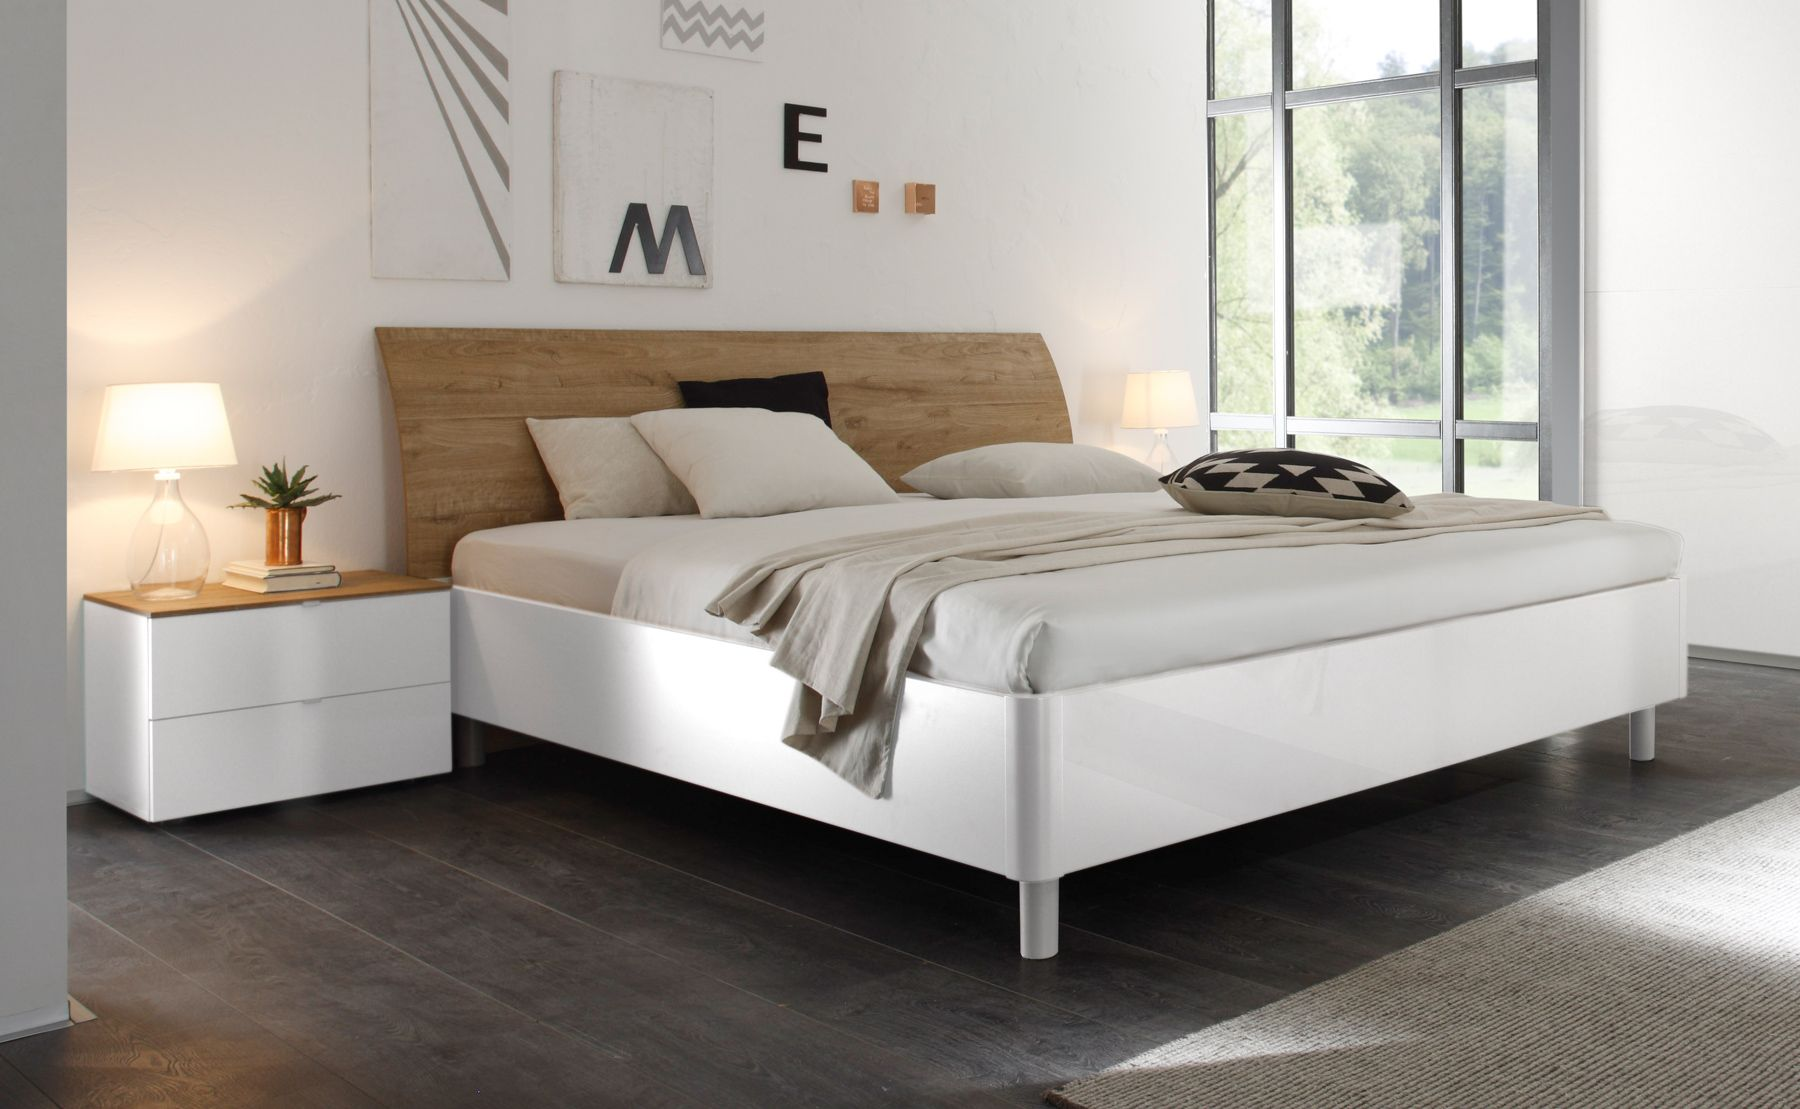 doppelbett bett 180 x 200 cm weiss hochglanz lack eiche. Black Bedroom Furniture Sets. Home Design Ideas